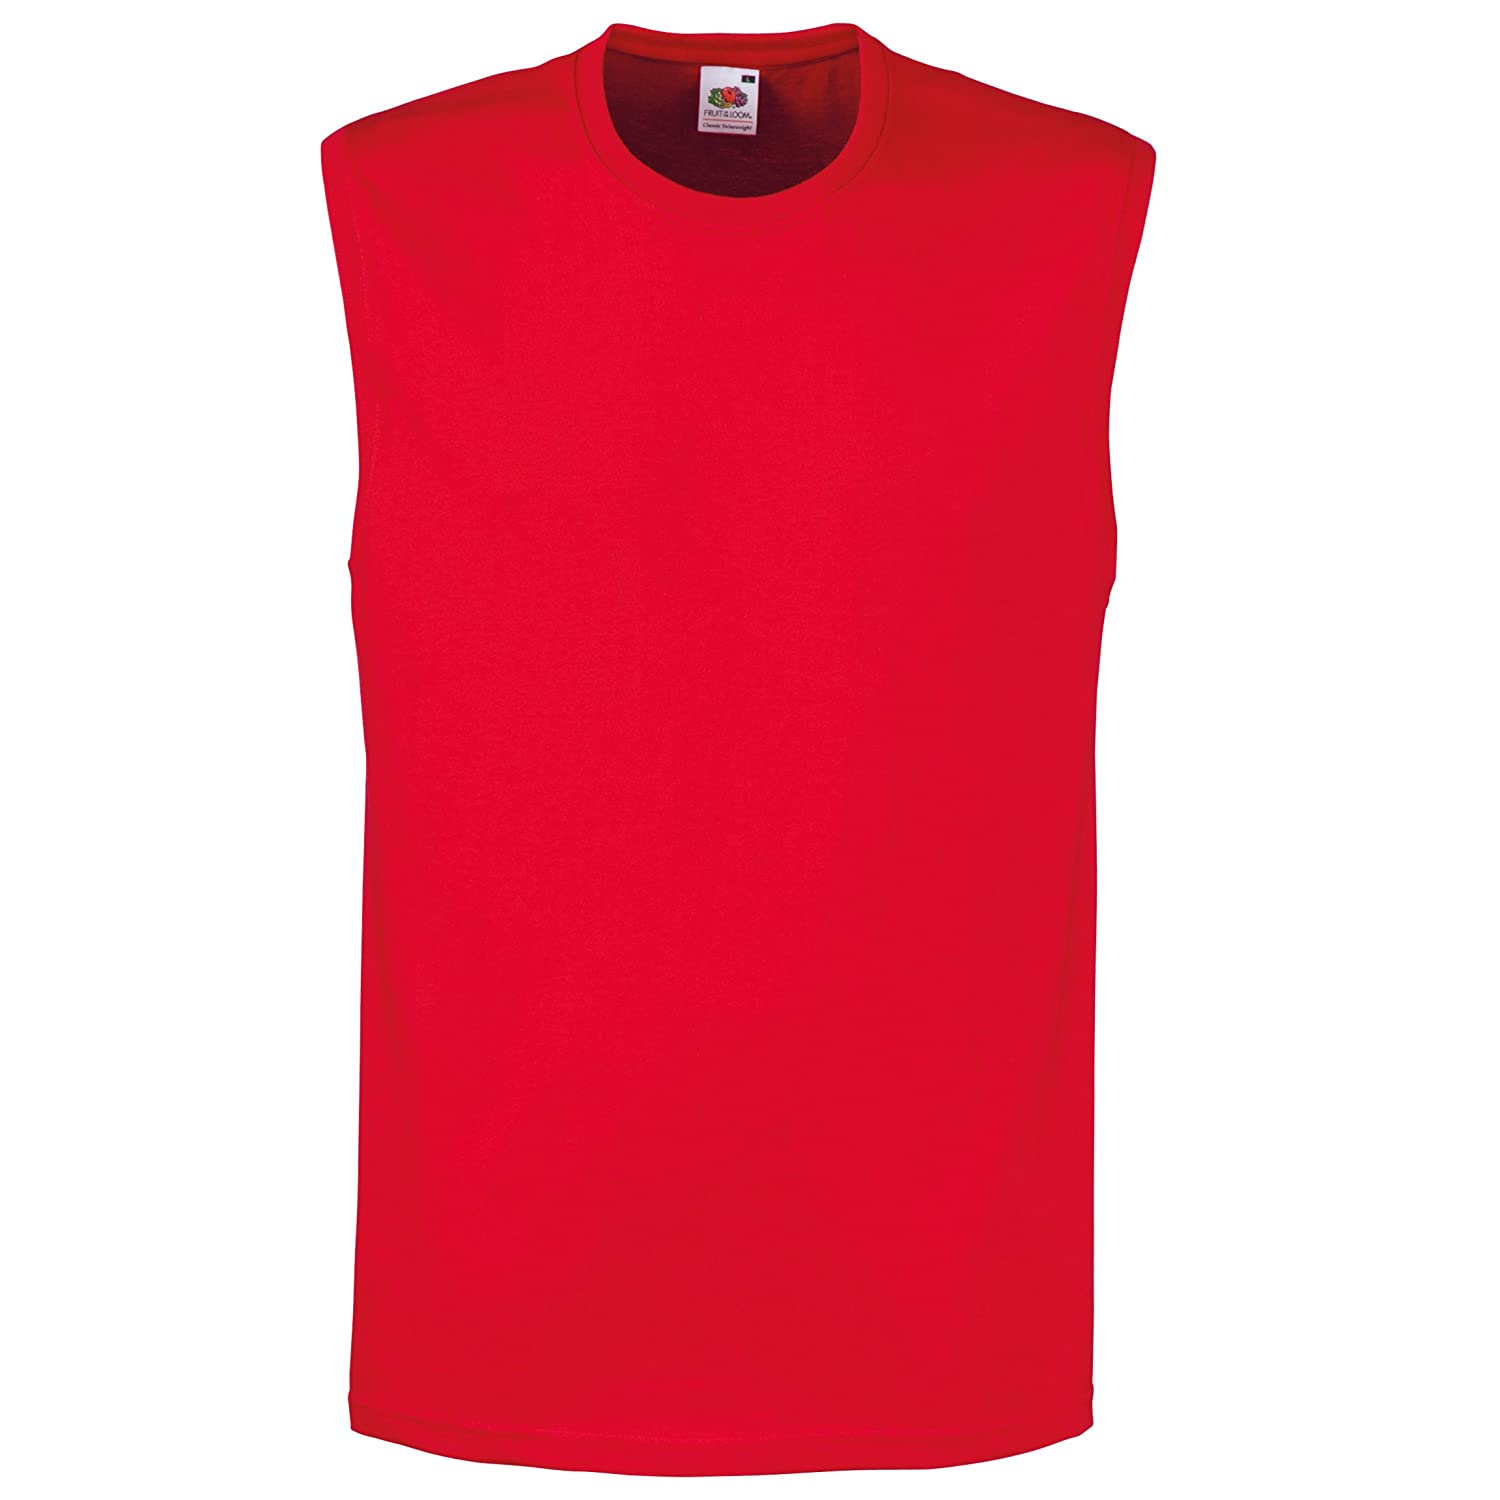 Fruit of the Loom Mens Sleeveless Vest/Tank Top